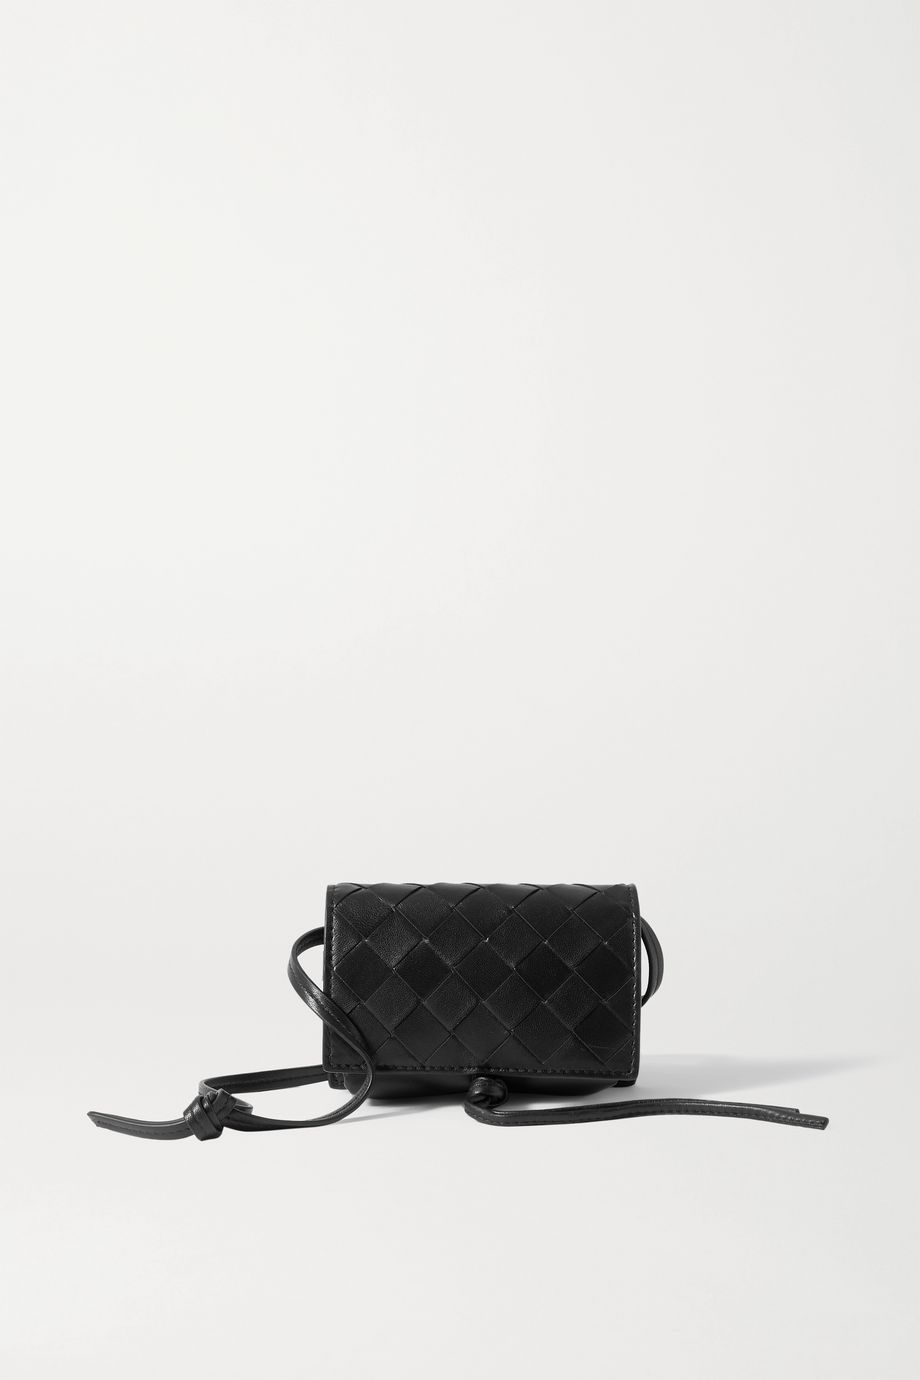 Bottega Veneta Mini intrecciato leather shoulder bag